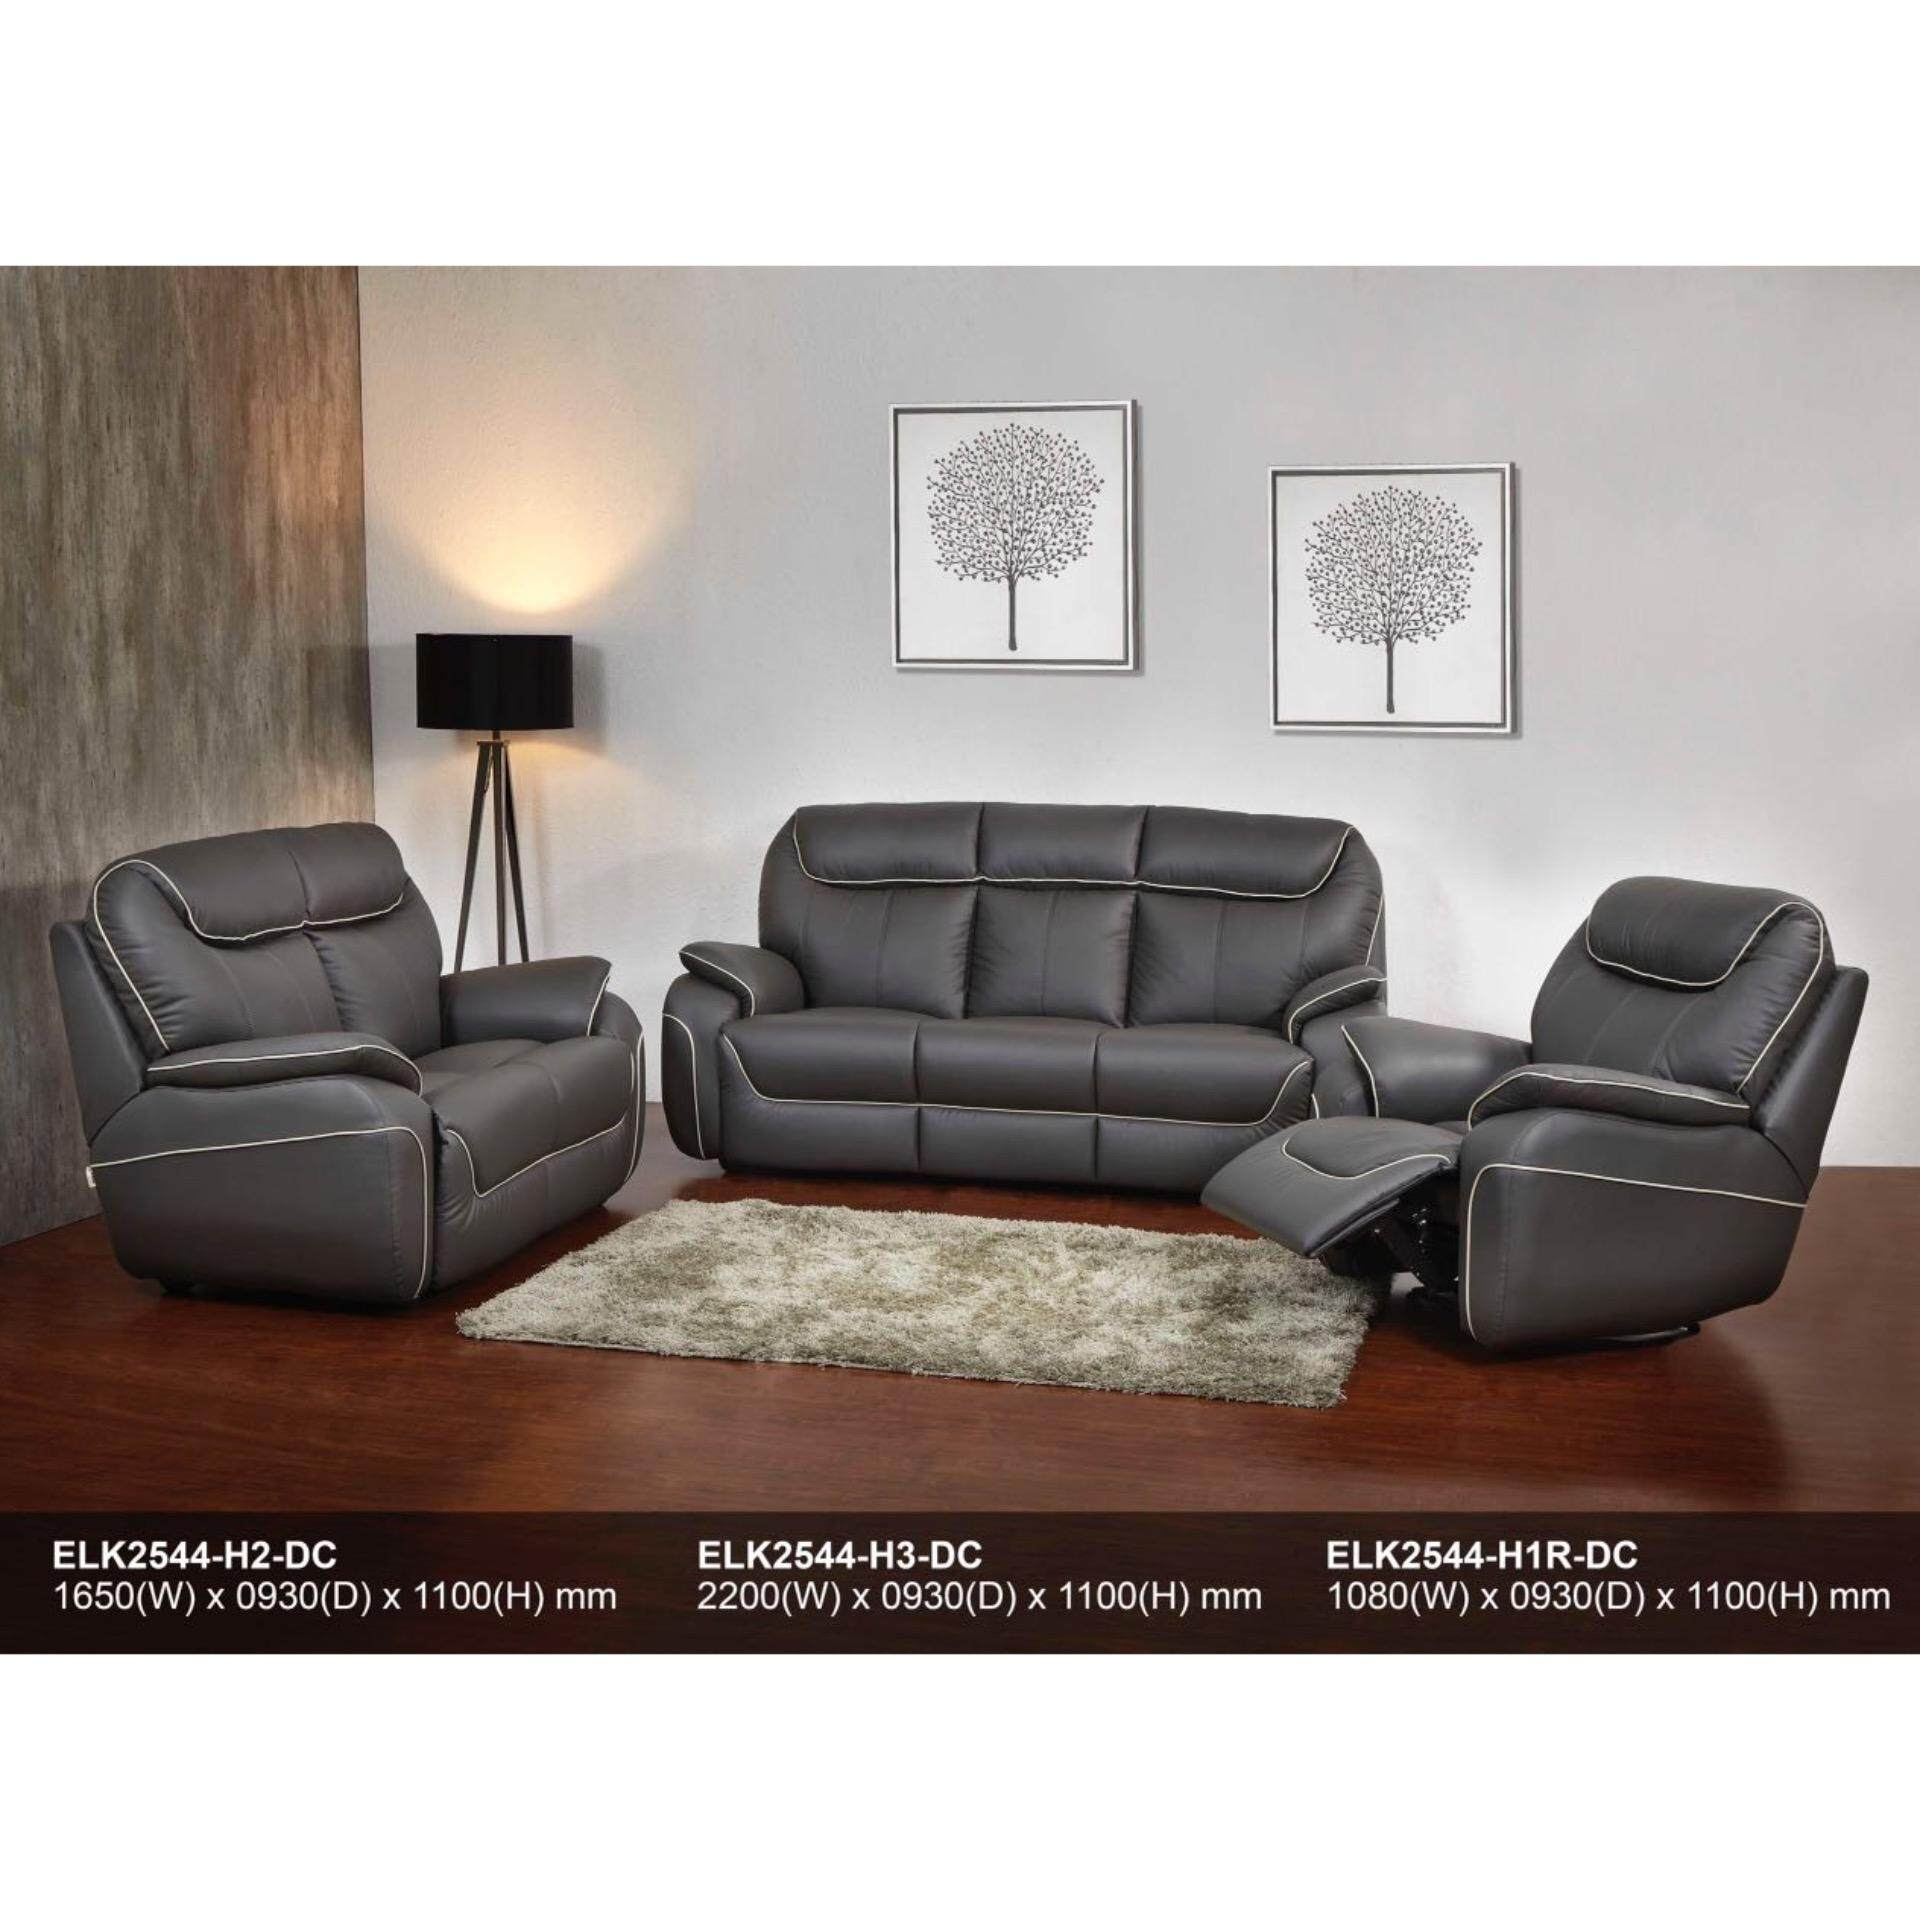 Recliner Sofa 1R+2+3 Fully Leather Sofa (Dark Brown) With 5 Years Warranty